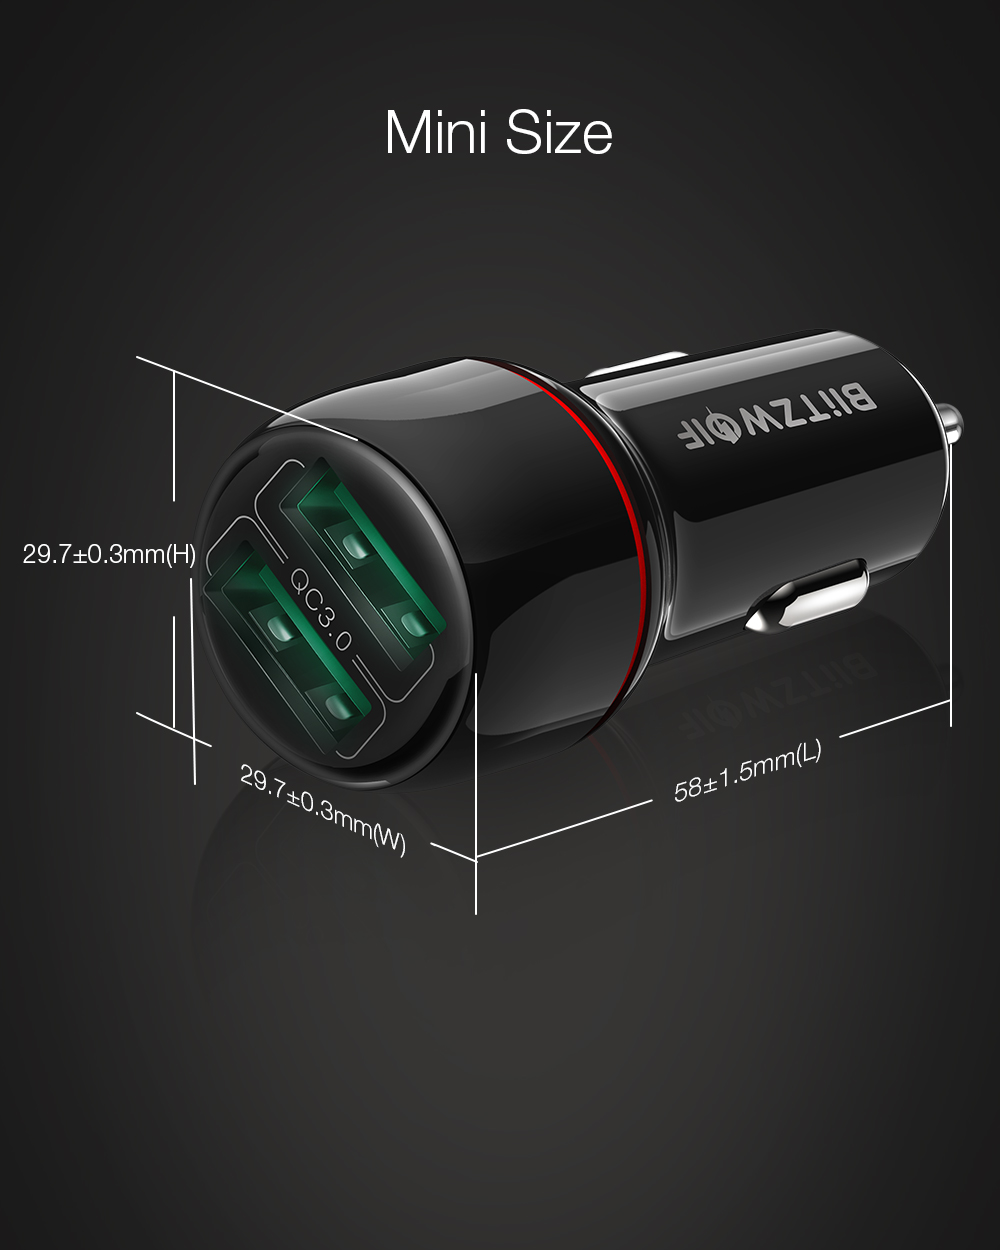 BlitzWolf 18W Dual QC3.0 USB Port Mini Fast Charging Car Charger for iPhone 11 Pro XS / Xiaomi / Pocophone F1 Mobile Phone